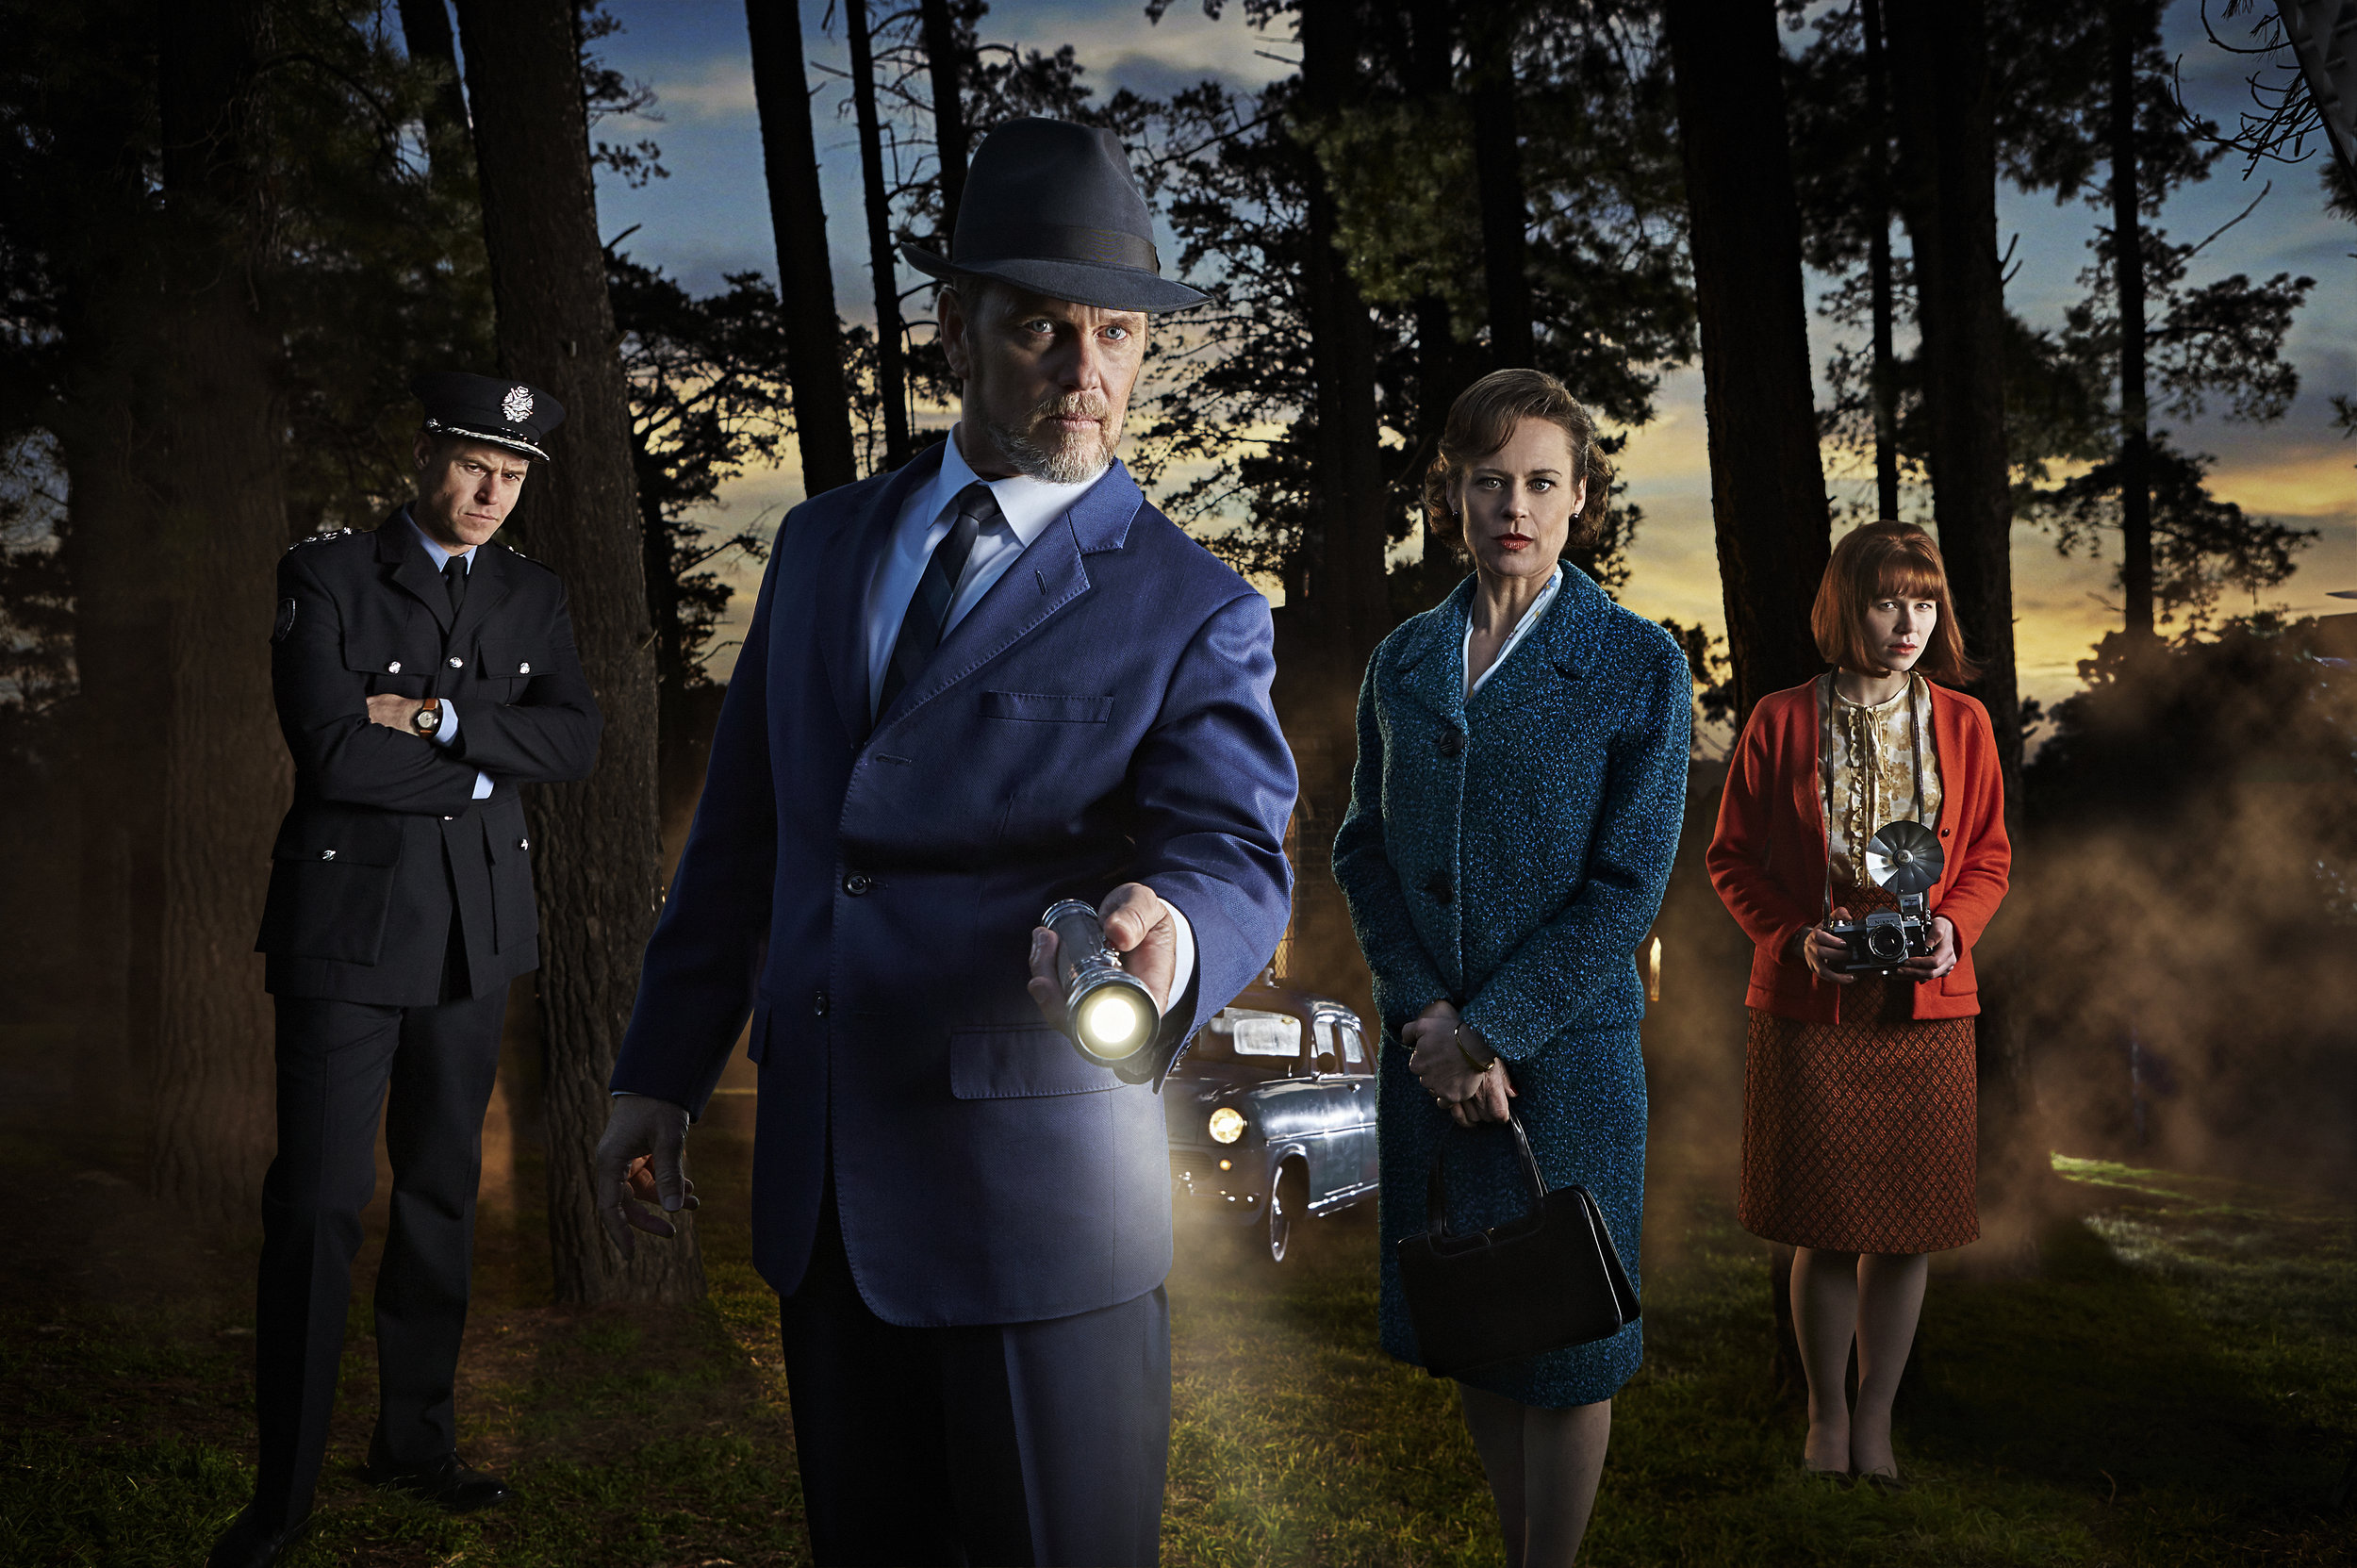 KEYART_DRBLAKE_S4_Hor1_2015.jpgL-R Chief Superintendent Frank Carlyle (Rodger Corser), Dr Lucien Blake (Craig McLachlan), Jean Beazely (Nadine Garner) and Rose Anderson (Anna McGahan).jpg